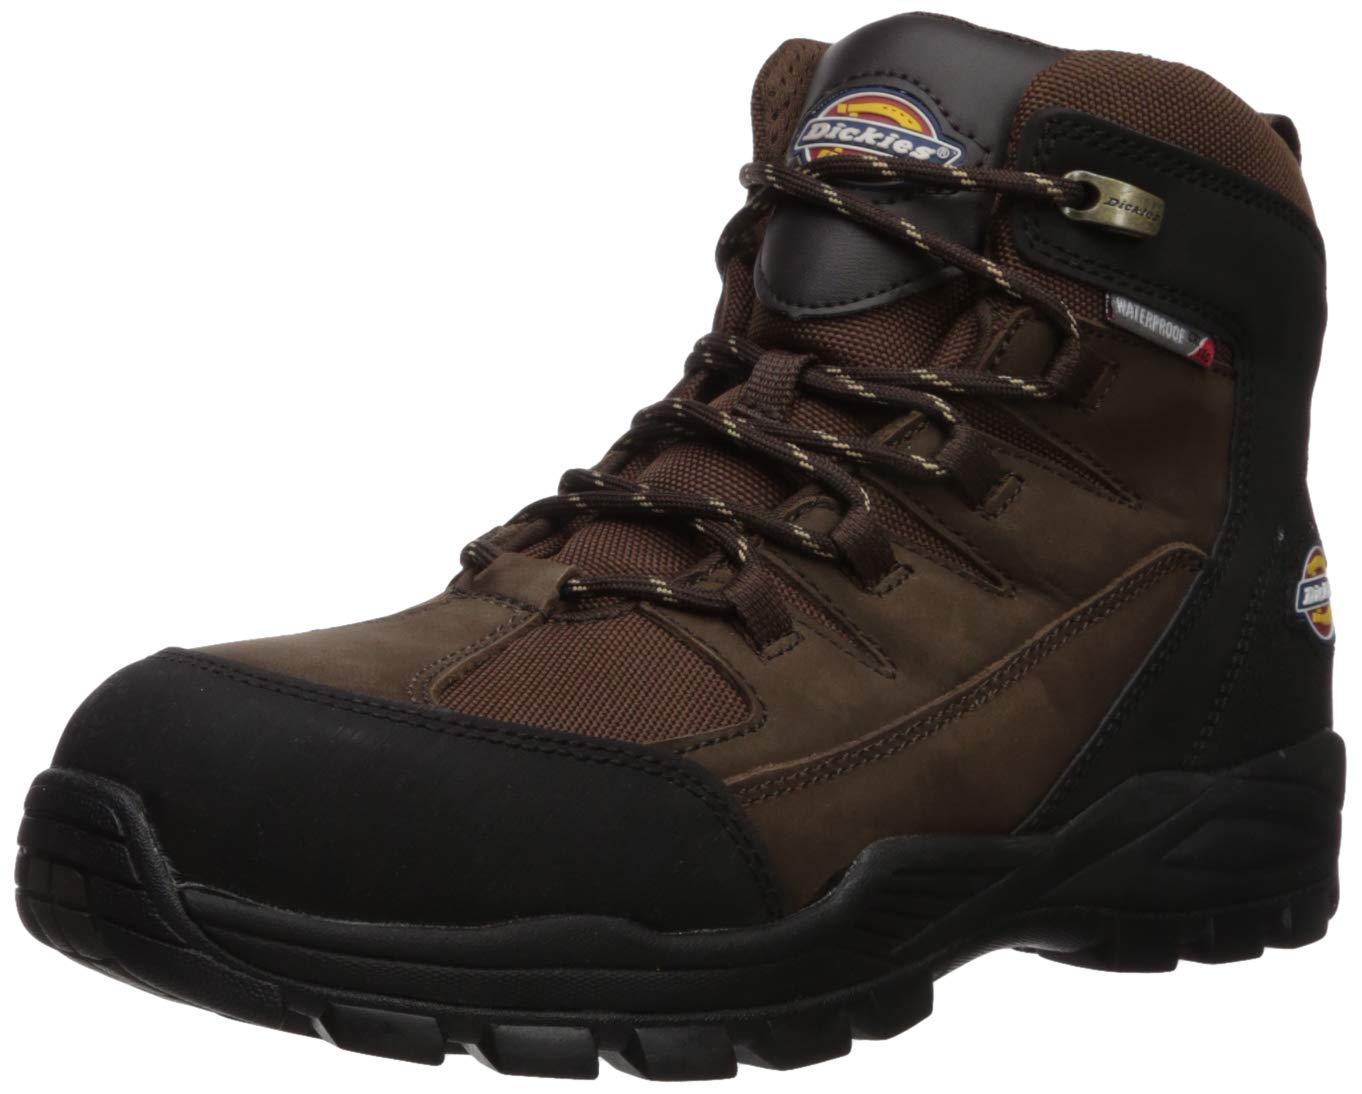 Dickies Men's Copperas 6'' Steel Toe EH Waterproof Industrial Boot, Brown, 9.5 Medium US by Dickies